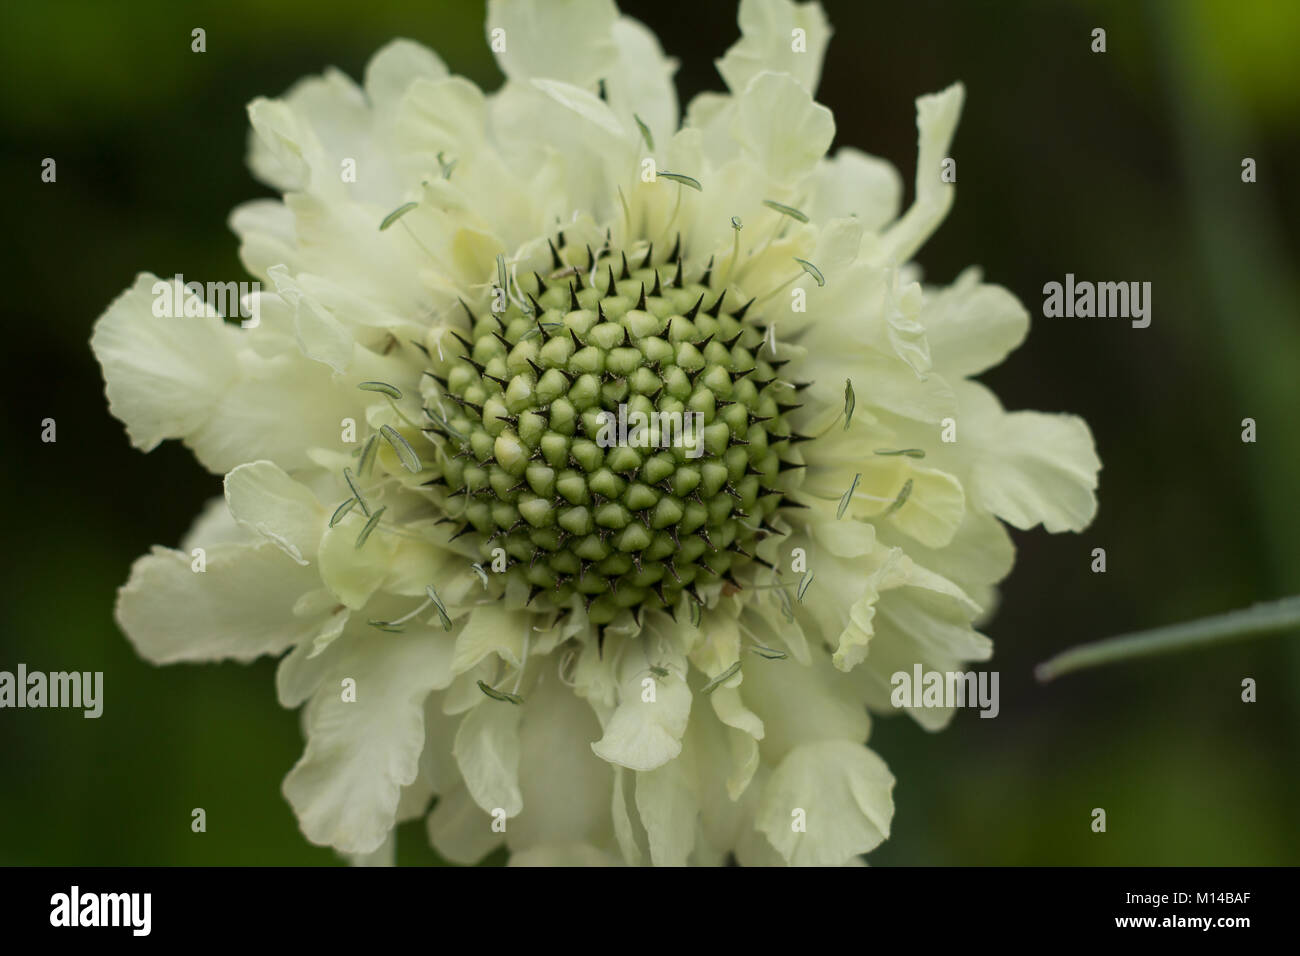 Giant Scabious Flower - Stock Image